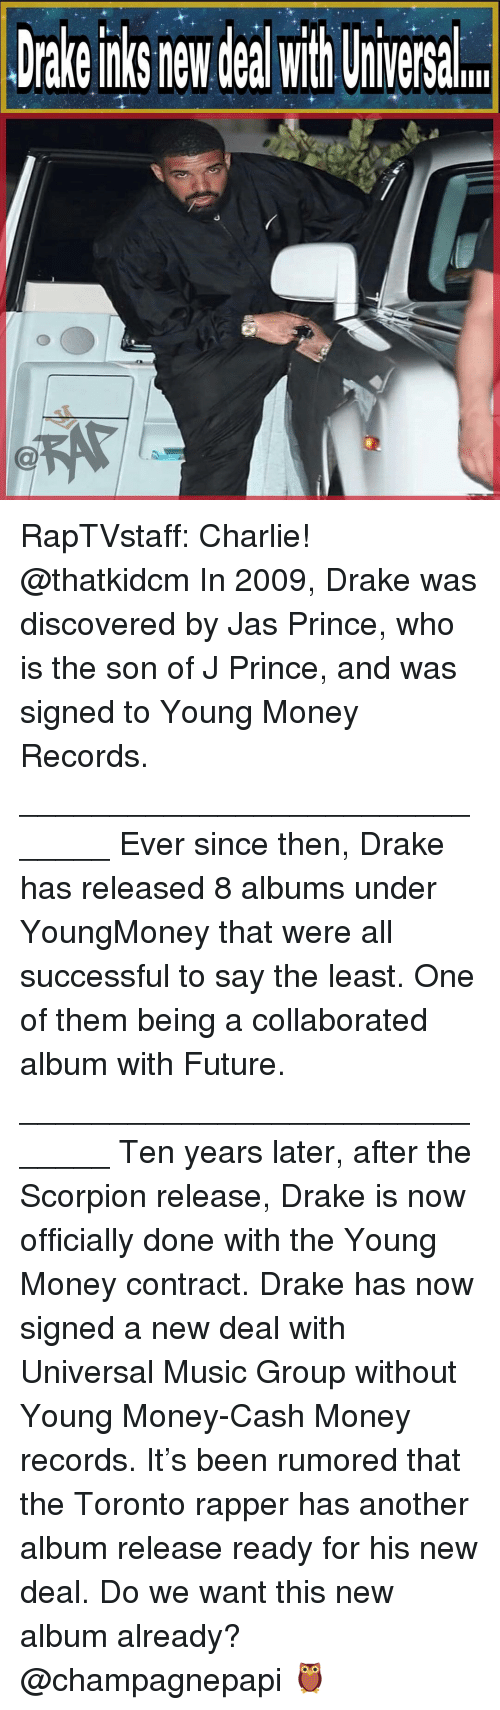 new deal: Drake nks new deal with Uiversal RapTVstaff: Charlie! @thatkidcm In 2009, Drake was discovered by Jas Prince, who is the son of J Prince, and was signed to Young Money Records. ______________________________ Ever since then, Drake has released 8 albums under YoungMoney that were all successful to say the least. One of them being a collaborated album with Future. ______________________________ Ten years later, after the Scorpion release, Drake is now officially done with the Young Money contract. Drake has now signed a new deal with Universal Music Group without Young Money-Cash Money records. It's been rumored that the Toronto rapper has another album release ready for his new deal. Do we want this new album already? @champagnepapi 🦉